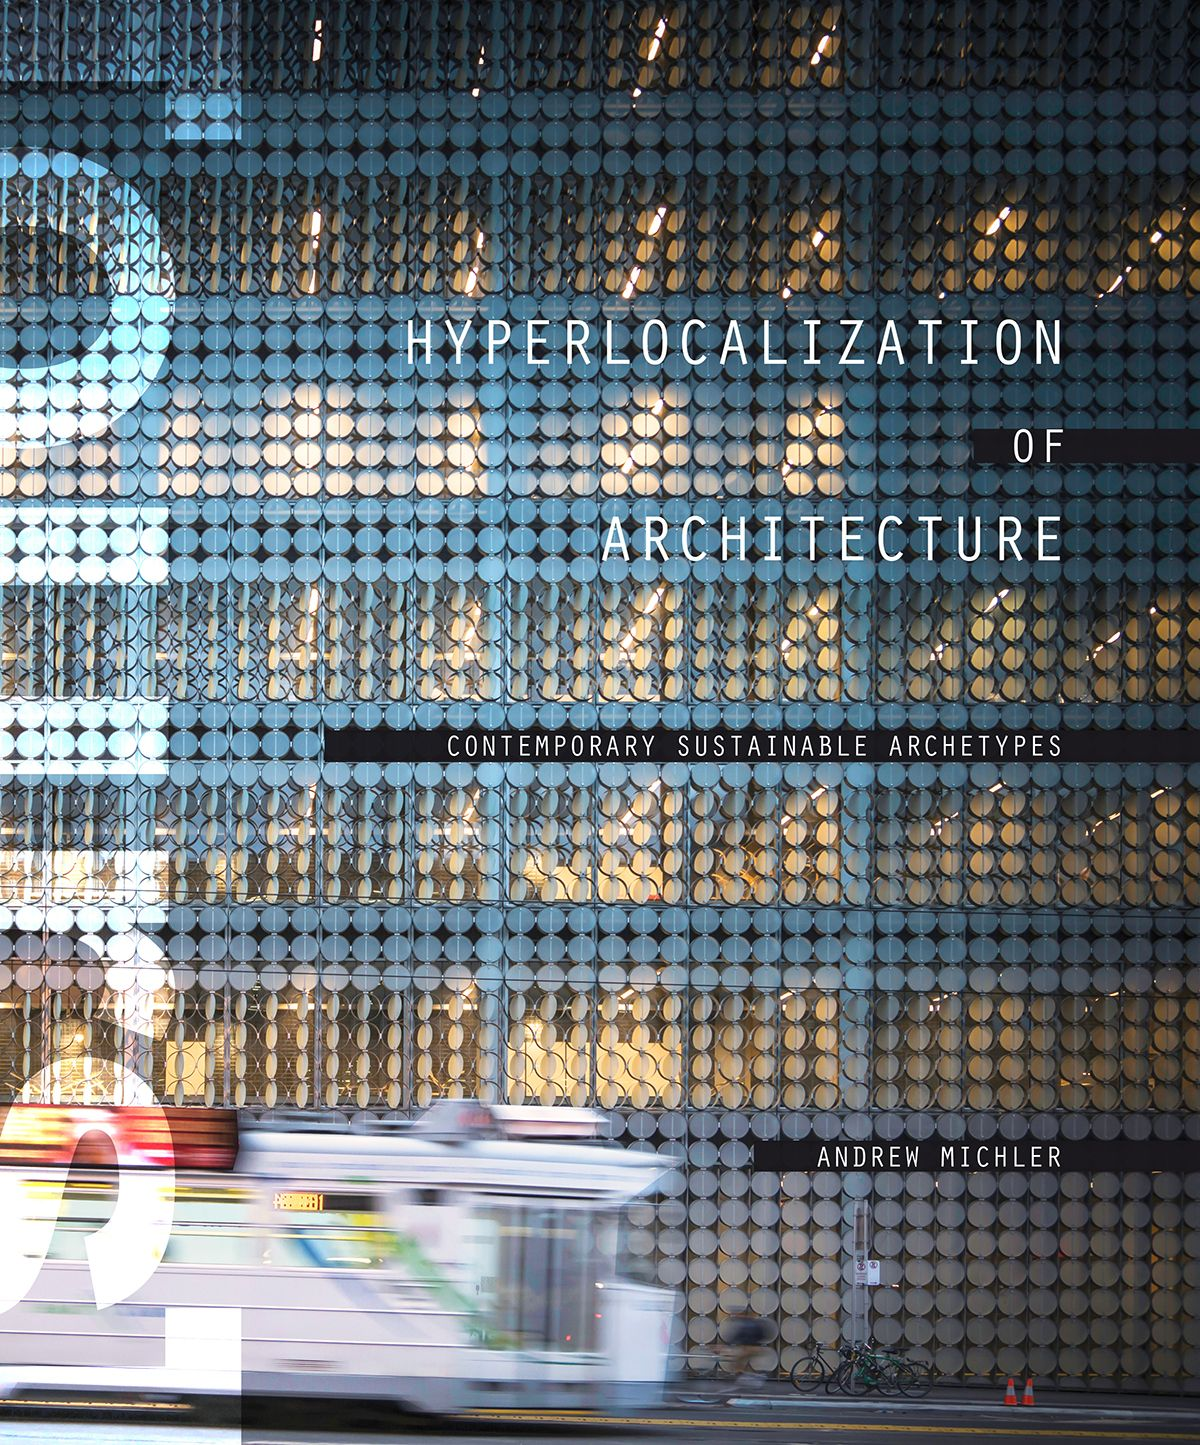 Fort Collins Museum of Art to Host the Book Release of Hyperlocalization of Architecture - eVolo | Architecture Magazine